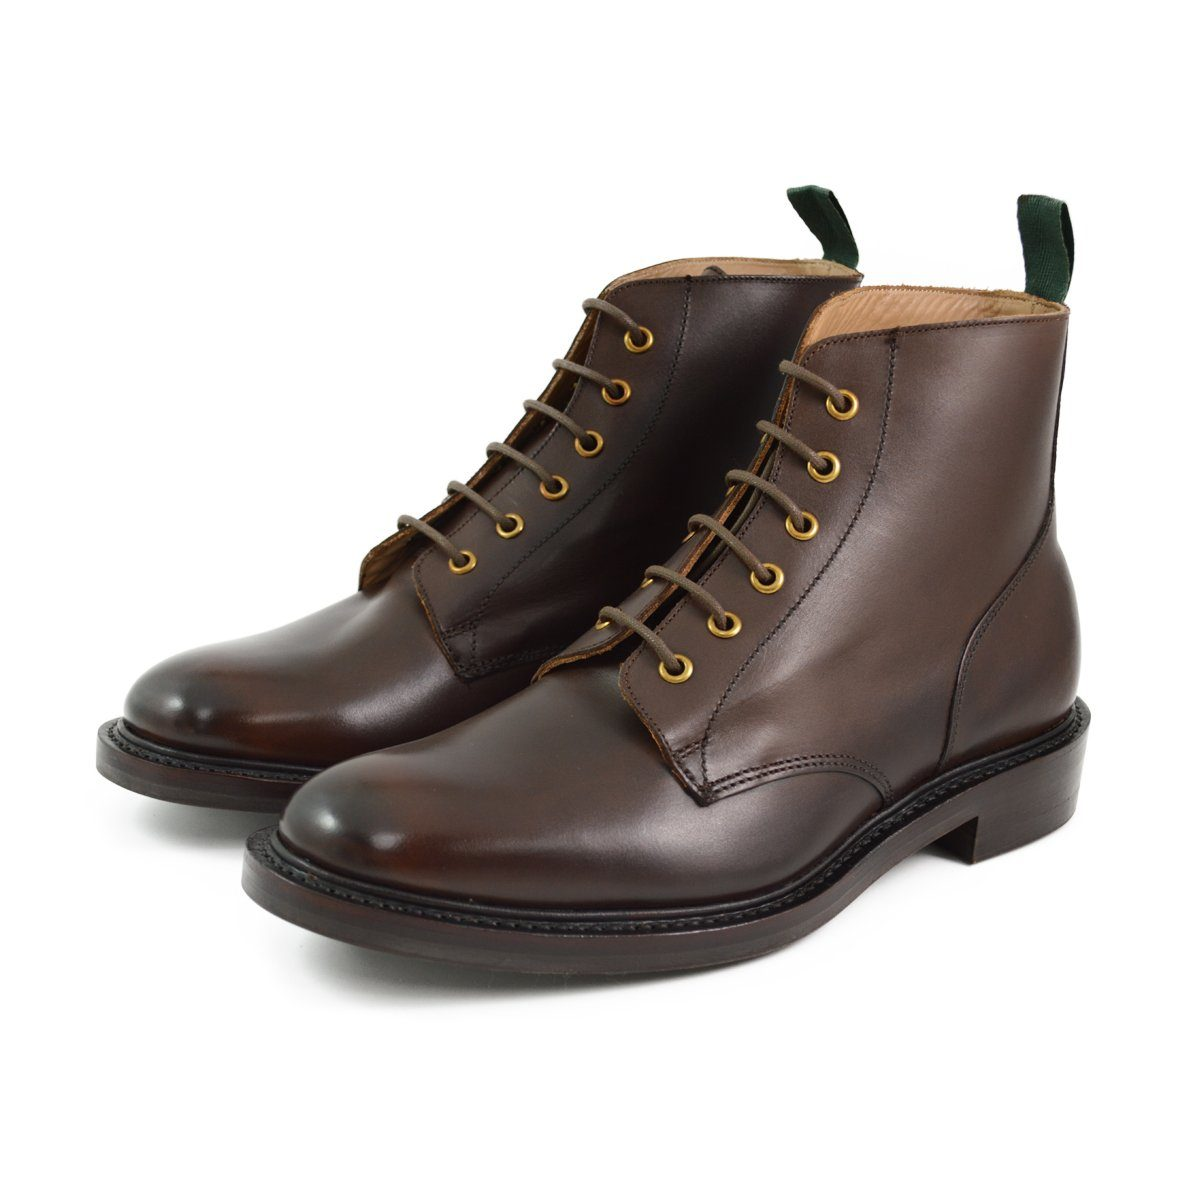 Nps Gladstone Plain Derby Boots Ebony With Dainite Sole